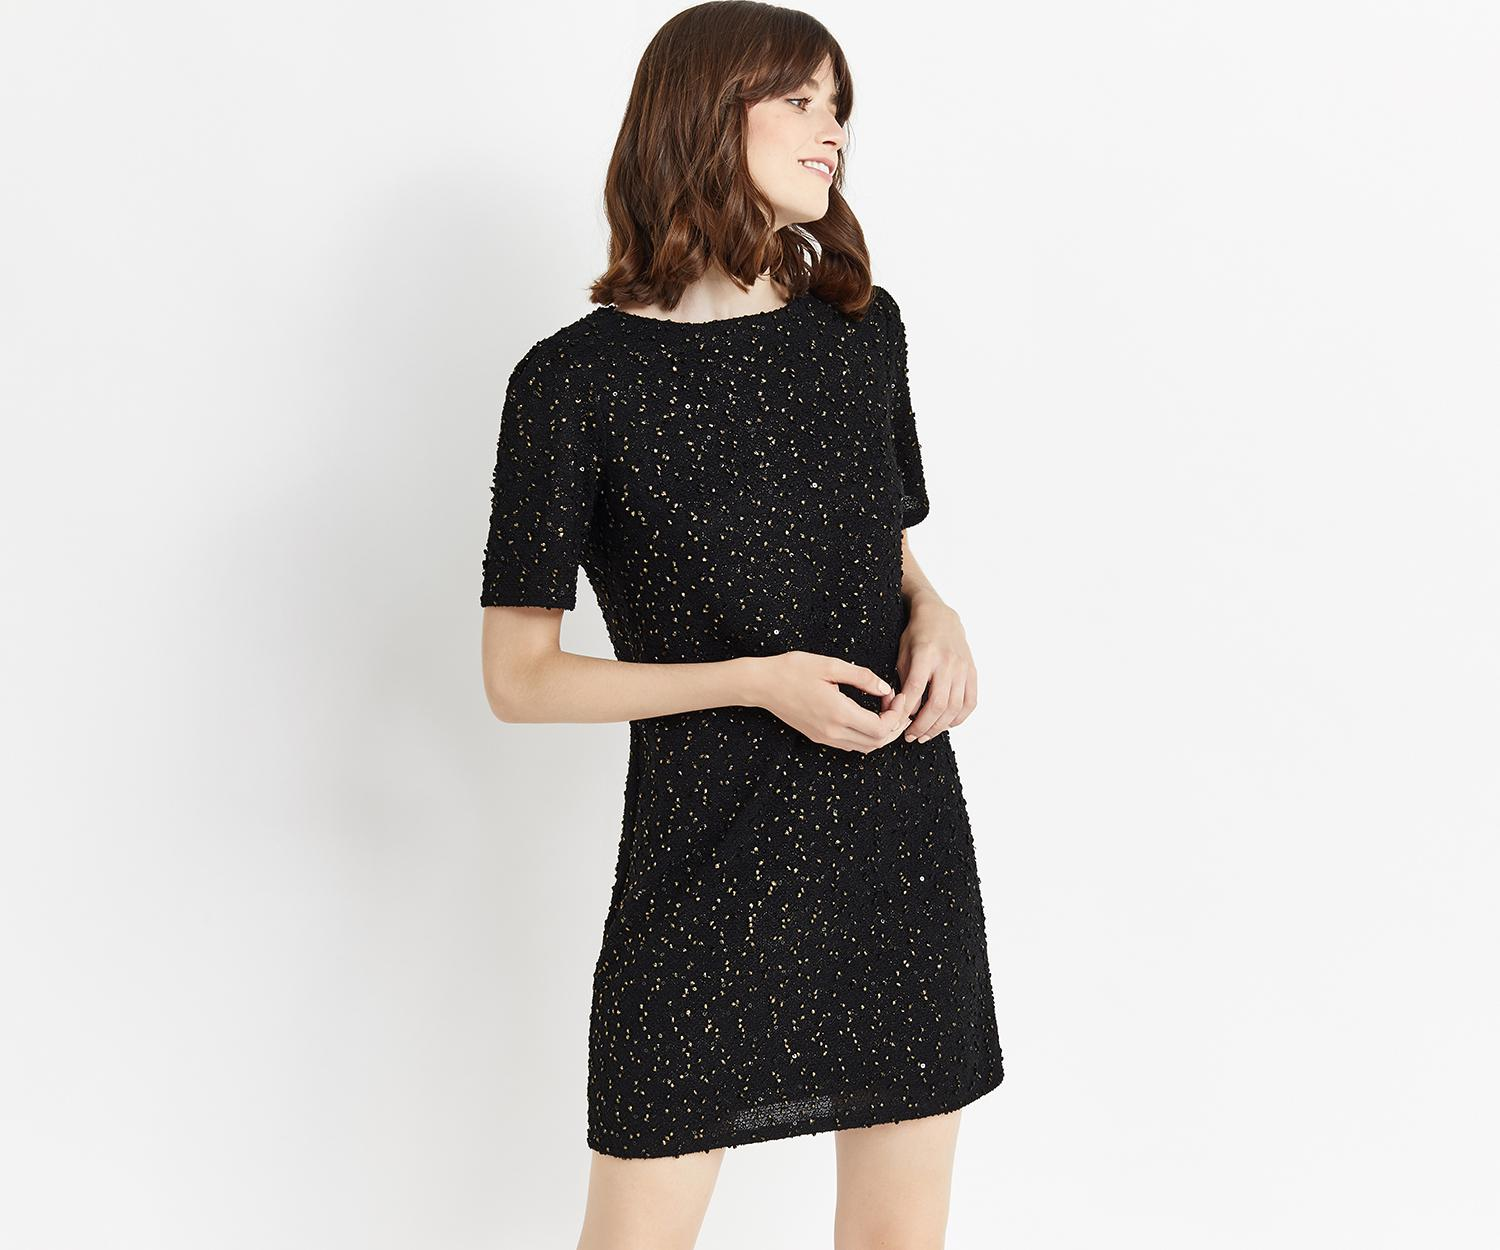 7eea0b35b14d Oasis Spot Foil Popcorn Dress in Black - Lyst